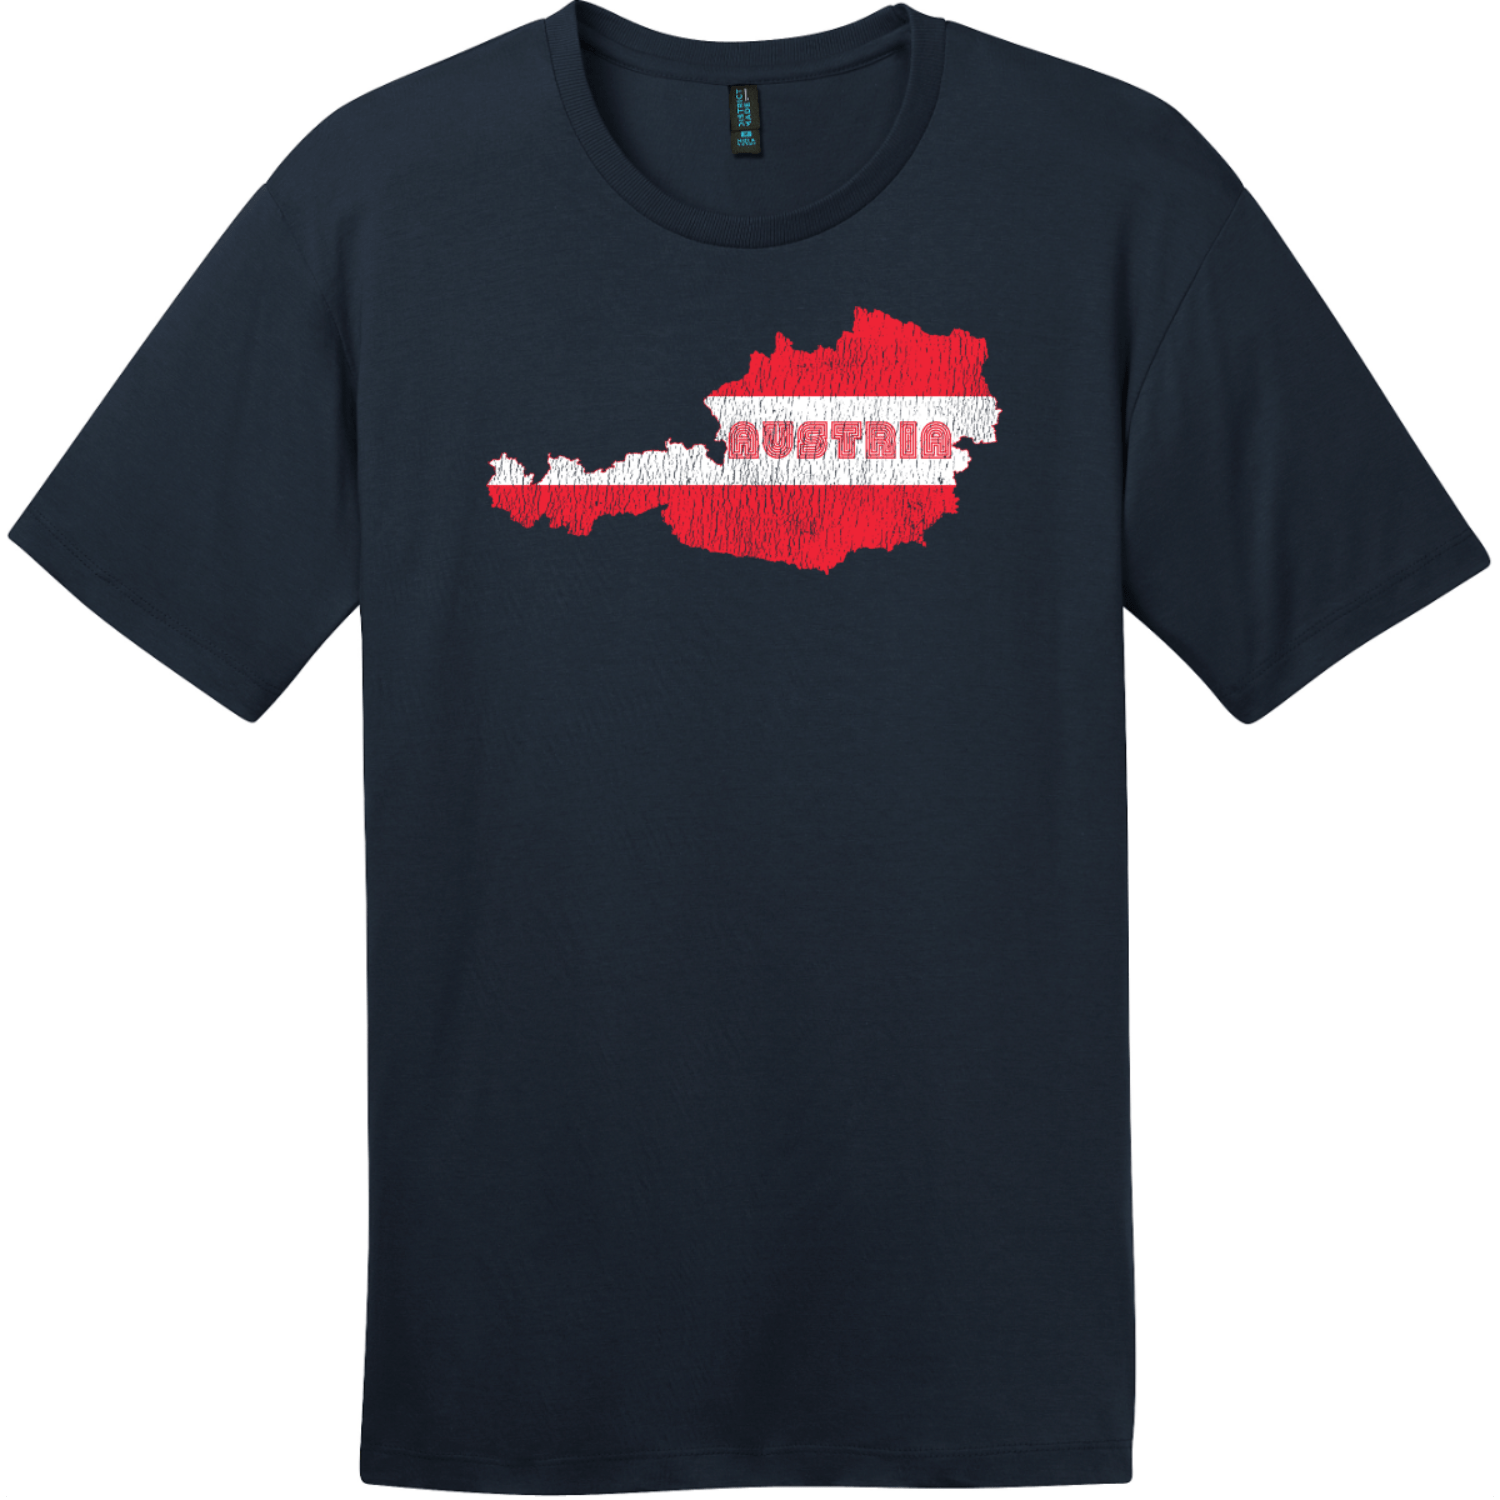 Austria Flag Country Retro T-Shirt New Navy District Perfect Weight Tee DT104